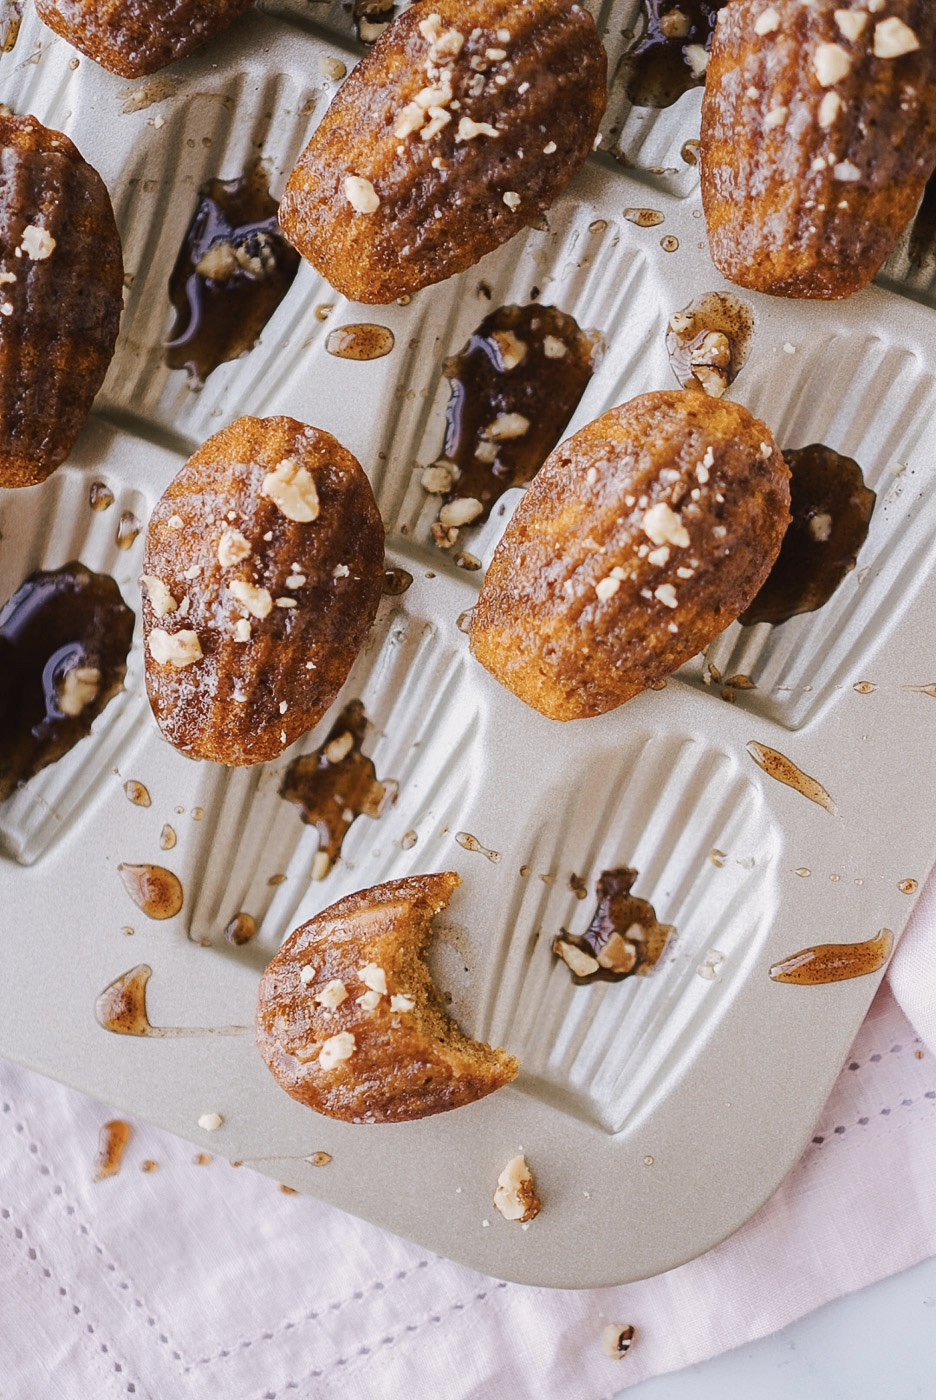 A recipe for pumpkin spice madeleines with maple glaze by Lifestyle blogger Lauren Cermak of Going For Grace. The perfect way to celebrate the Fall season!